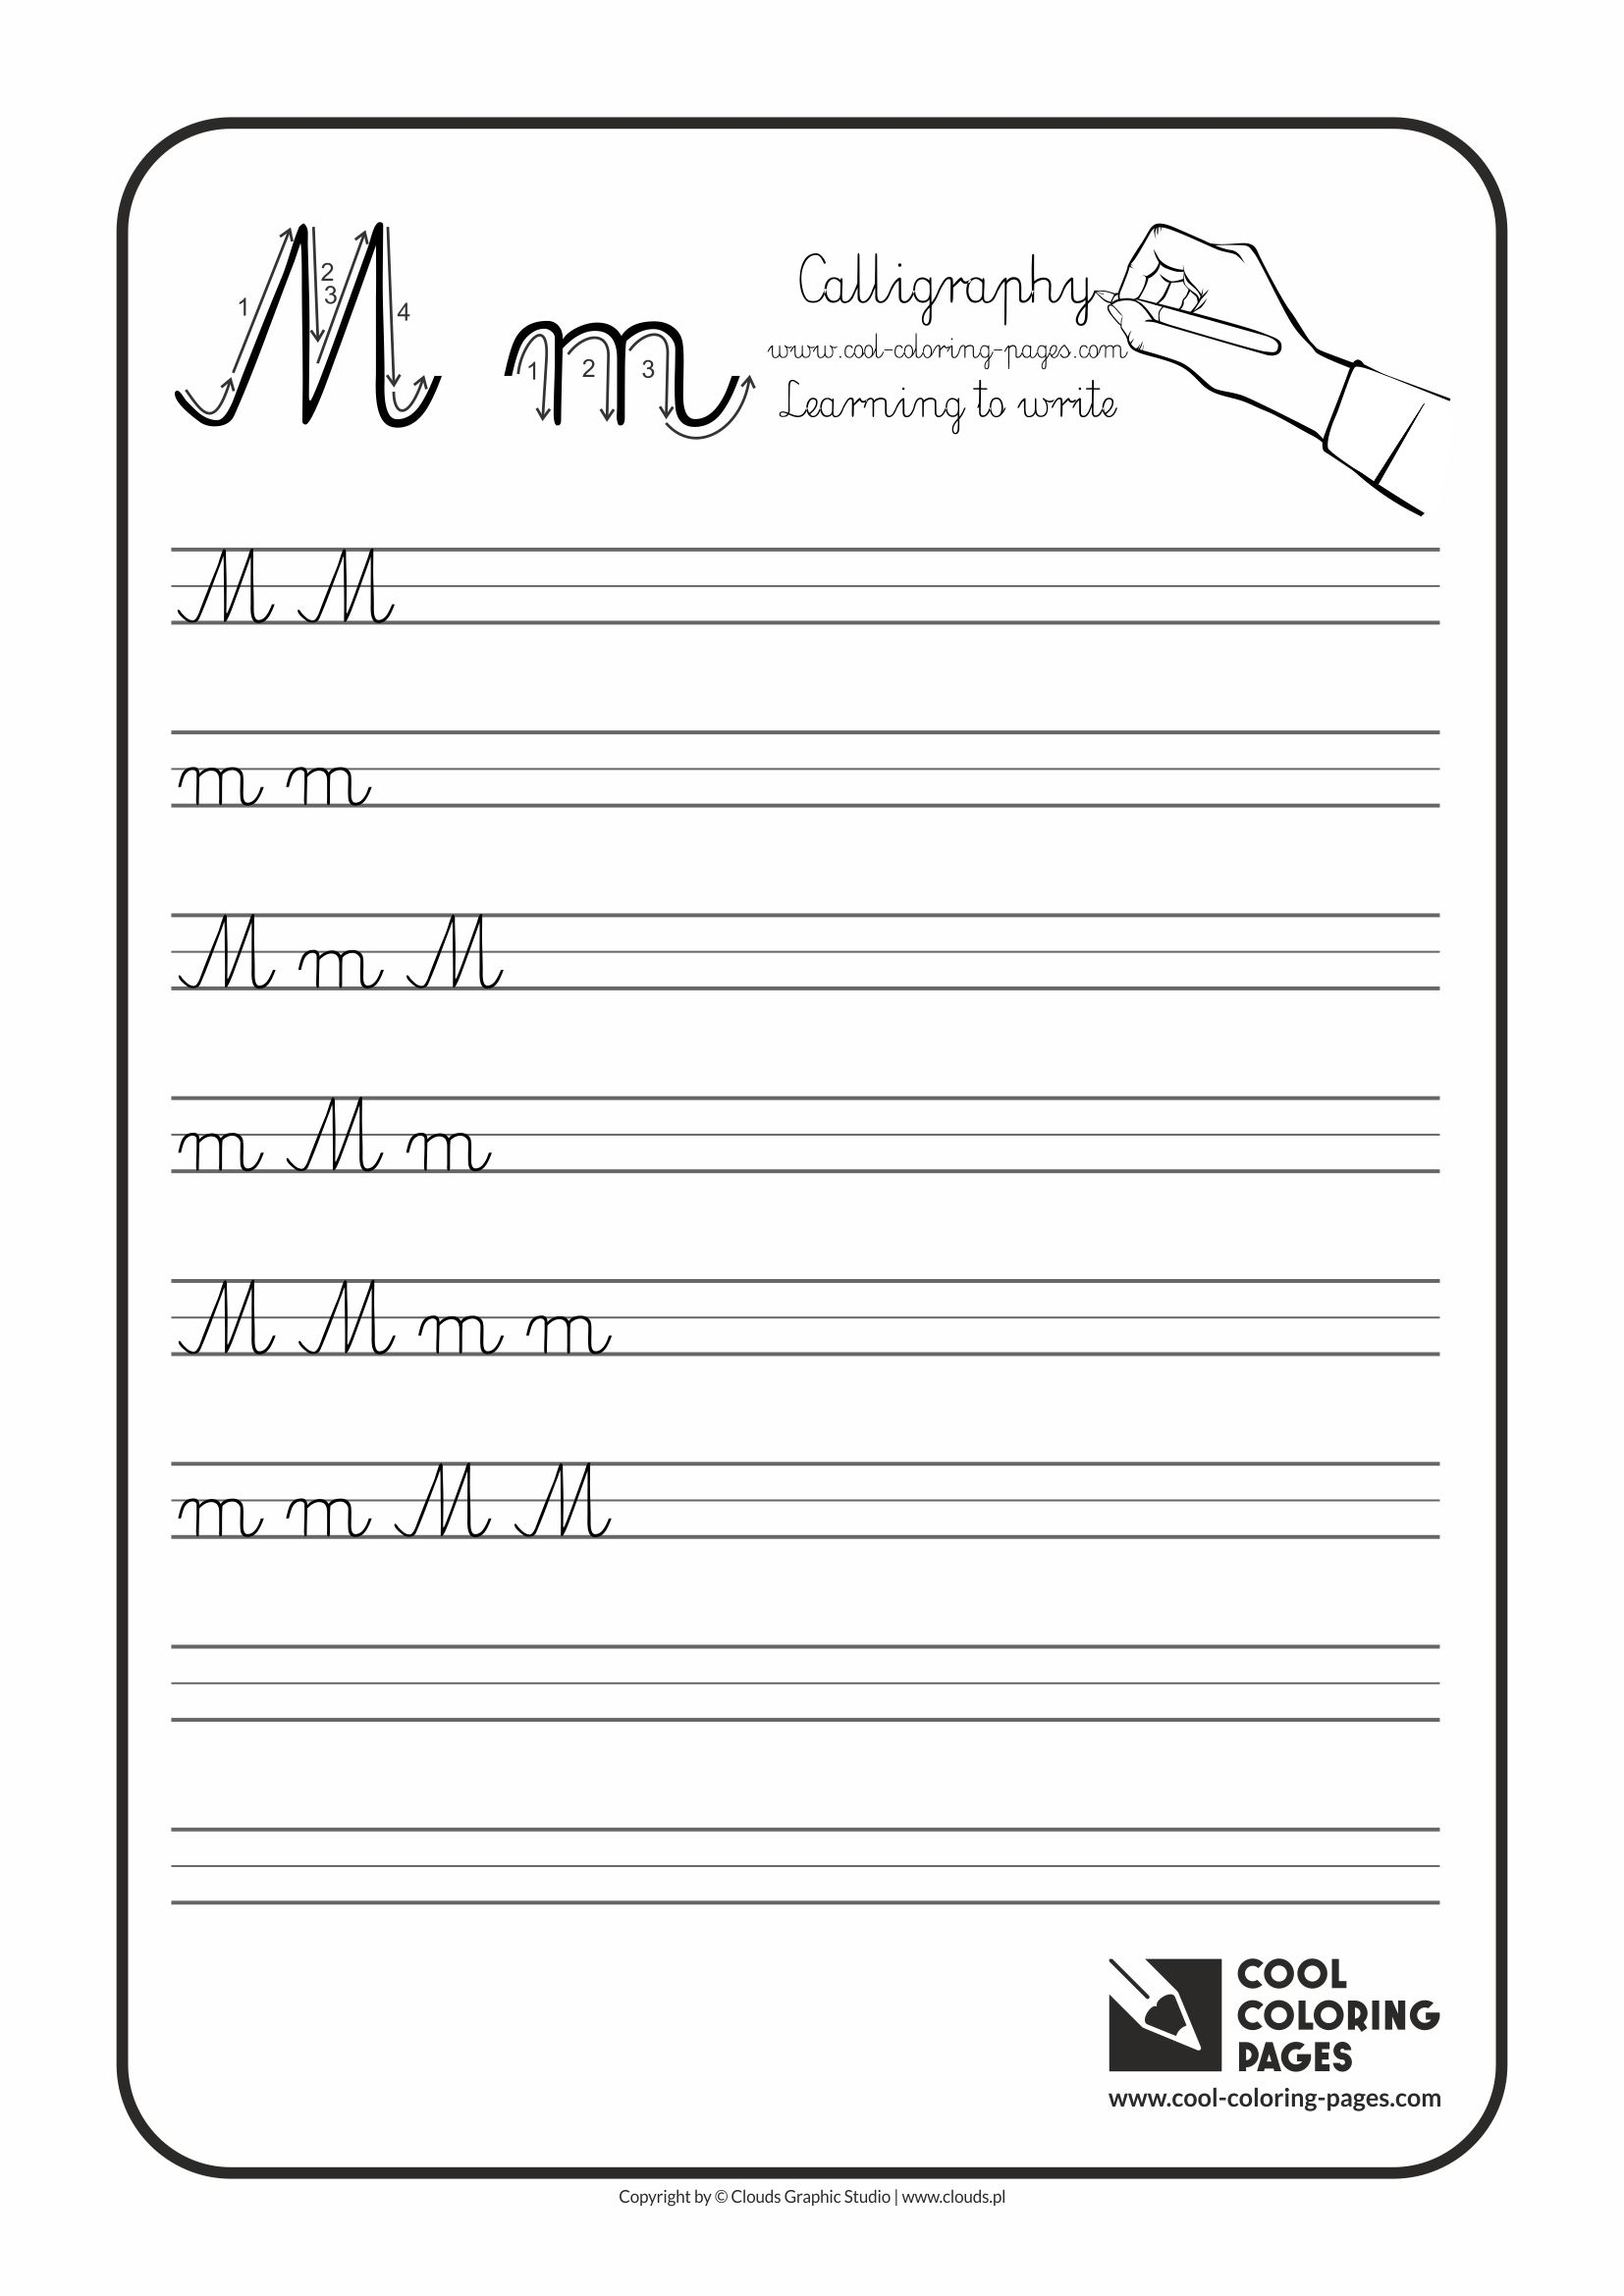 Cool Coloring Pages Calligraphy for kids - Letters / Handwriting ...